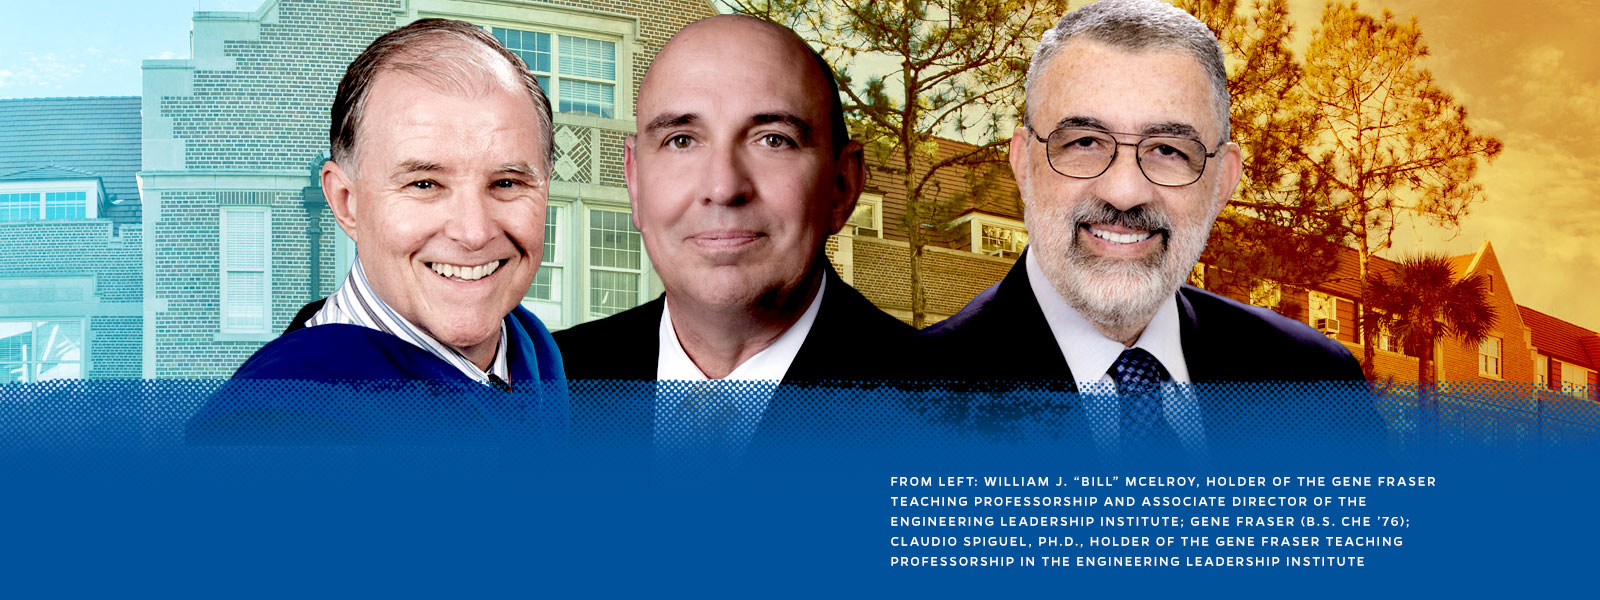 "From left: William J. ""Bill"" McElroy, holder of the Gene Fraser Teaching Professorship and Associate Director of the Engineering Leadership Institute; Gene Fraser (B.S. ChE '76); Claudio Spiguel, Ph.D., holder of the Gene Fraser Teaching Professorship in the Engineering Leadership Institute"